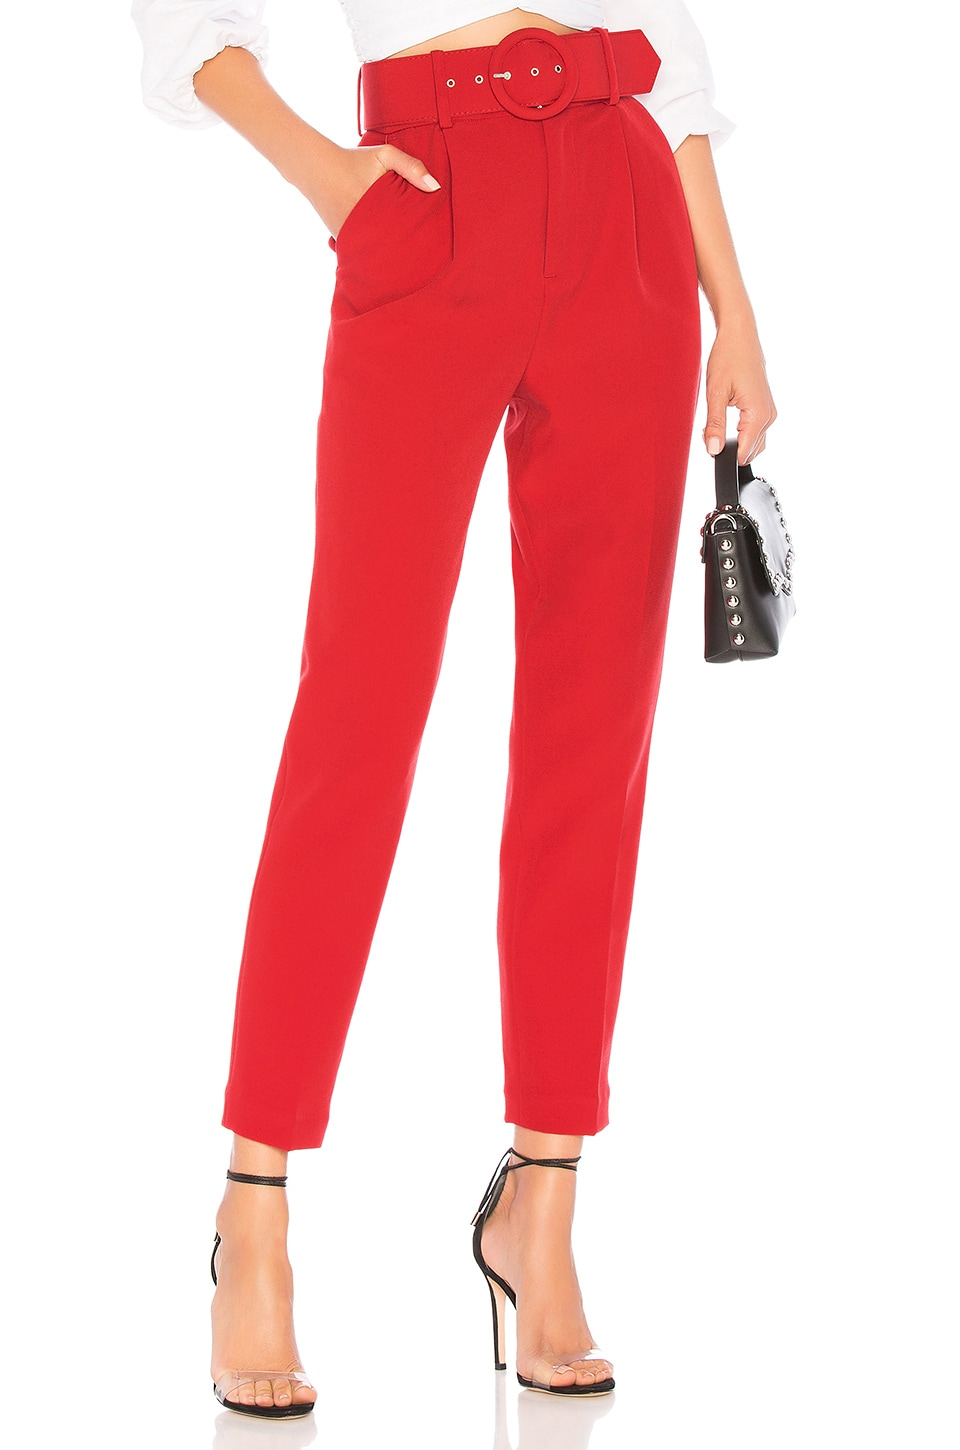 L'Academie The Mia Pant in Scarlet Red